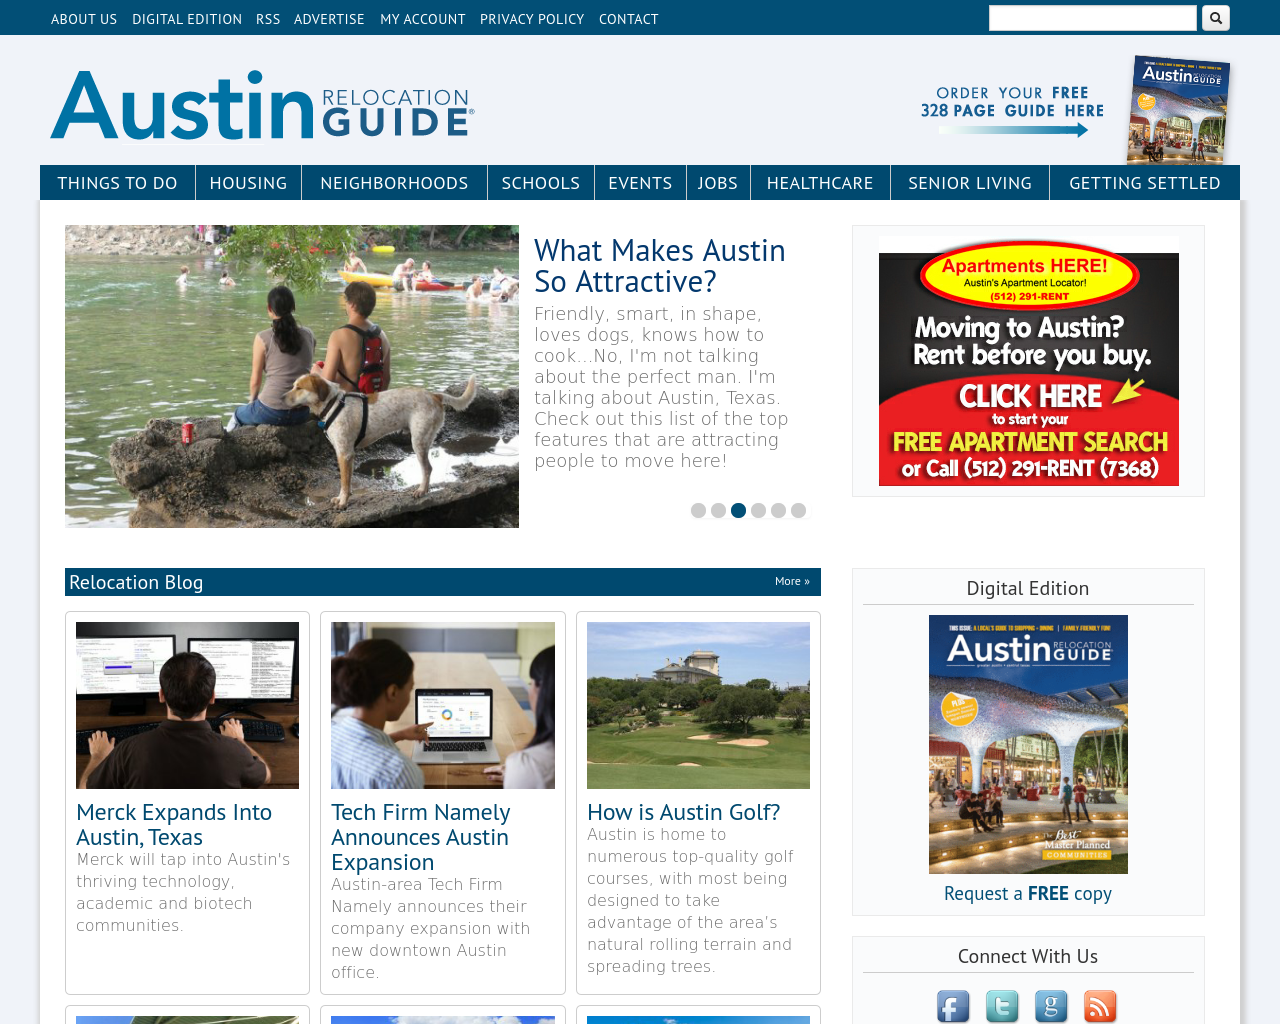 Austin-Relocation-Guide-Advertising-Reviews-Pricing